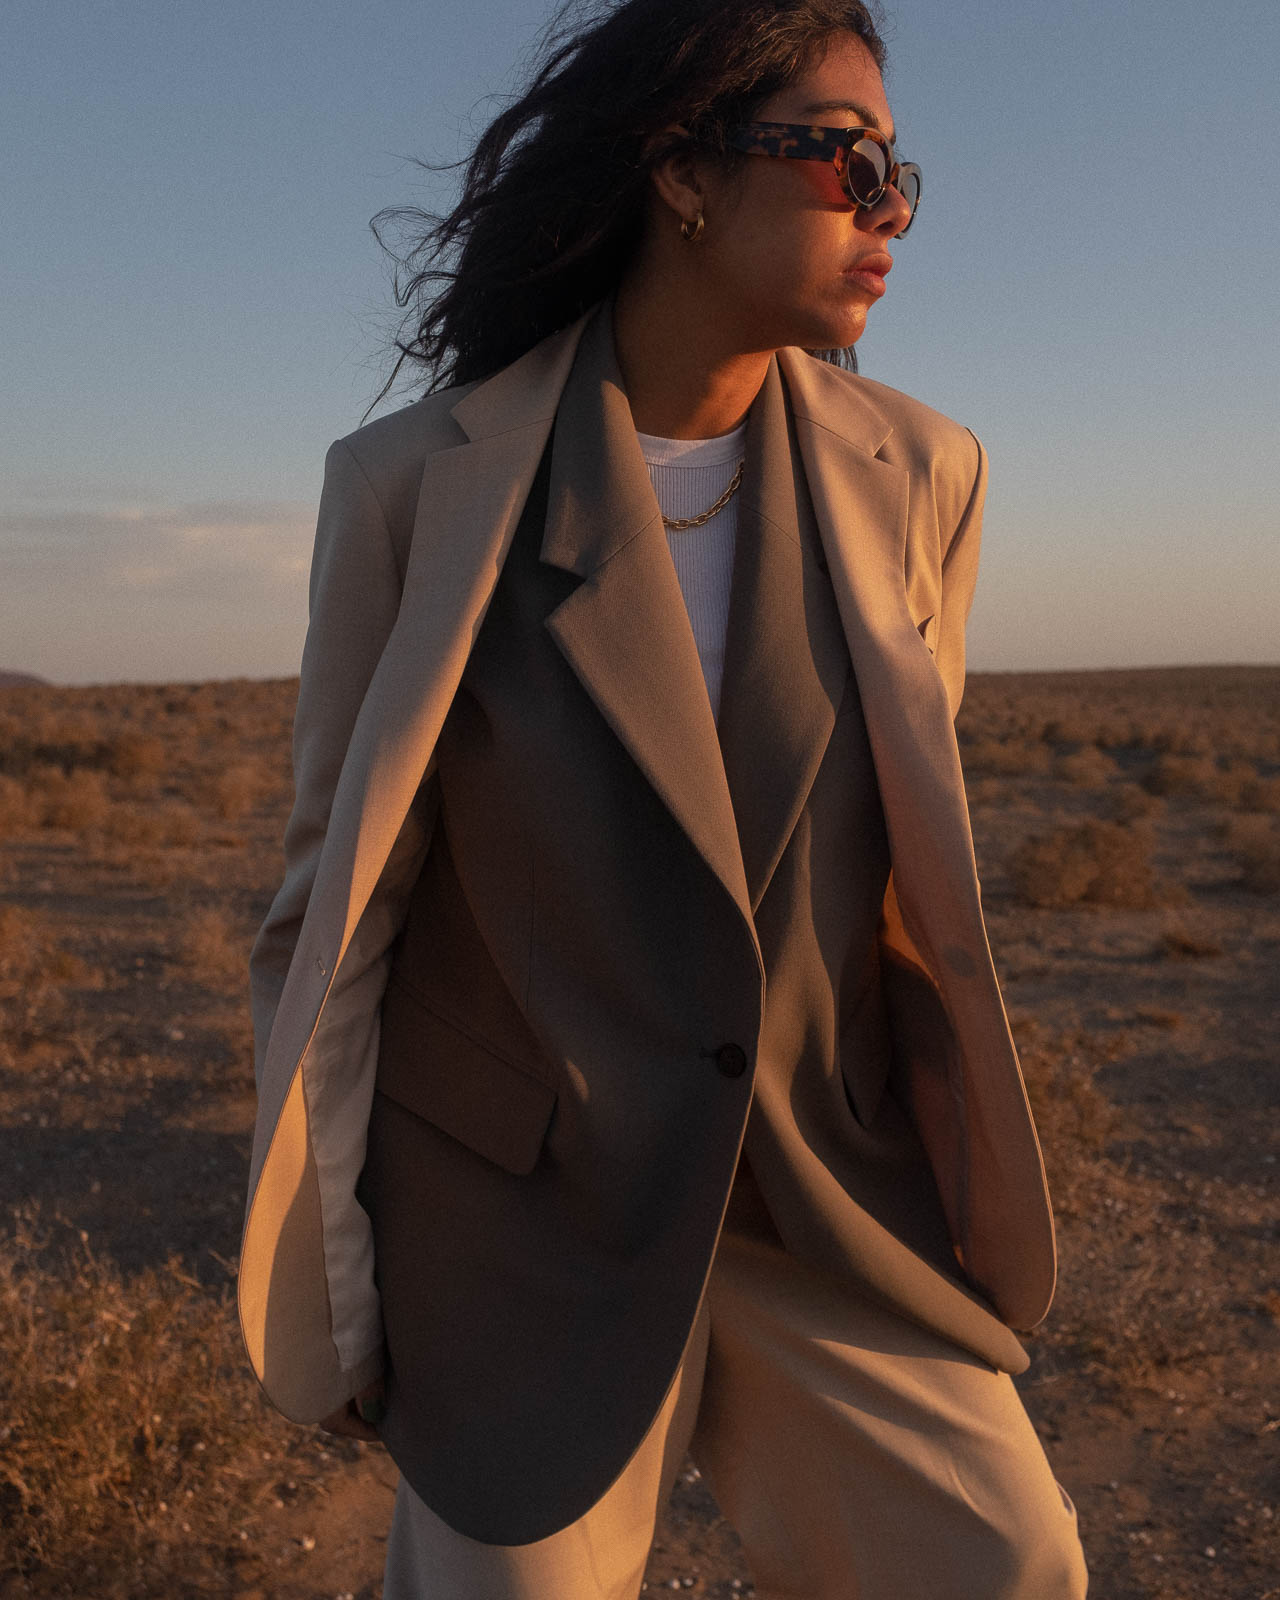 storm wears arket blazer in off grey combined with kindersalmon beige blazer and nina kastens chunky gold necklace in Lanzarote